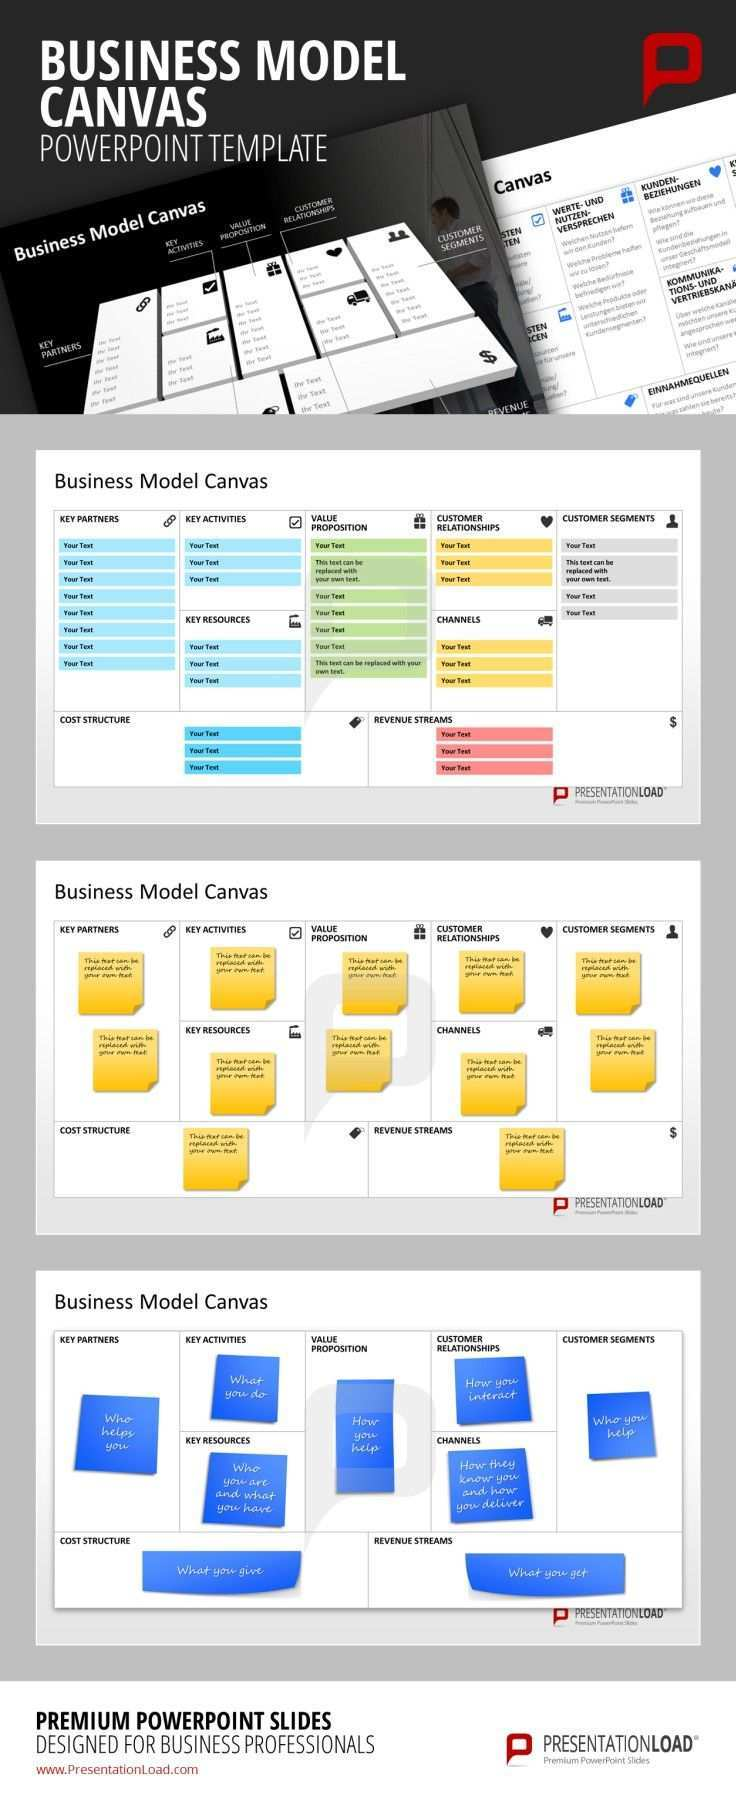 Business Model Canvas Powerpoint Template For Planning And Visualization Of The Strategic Development Of New And Existing Geschaftstipps Finanzen Businessplan